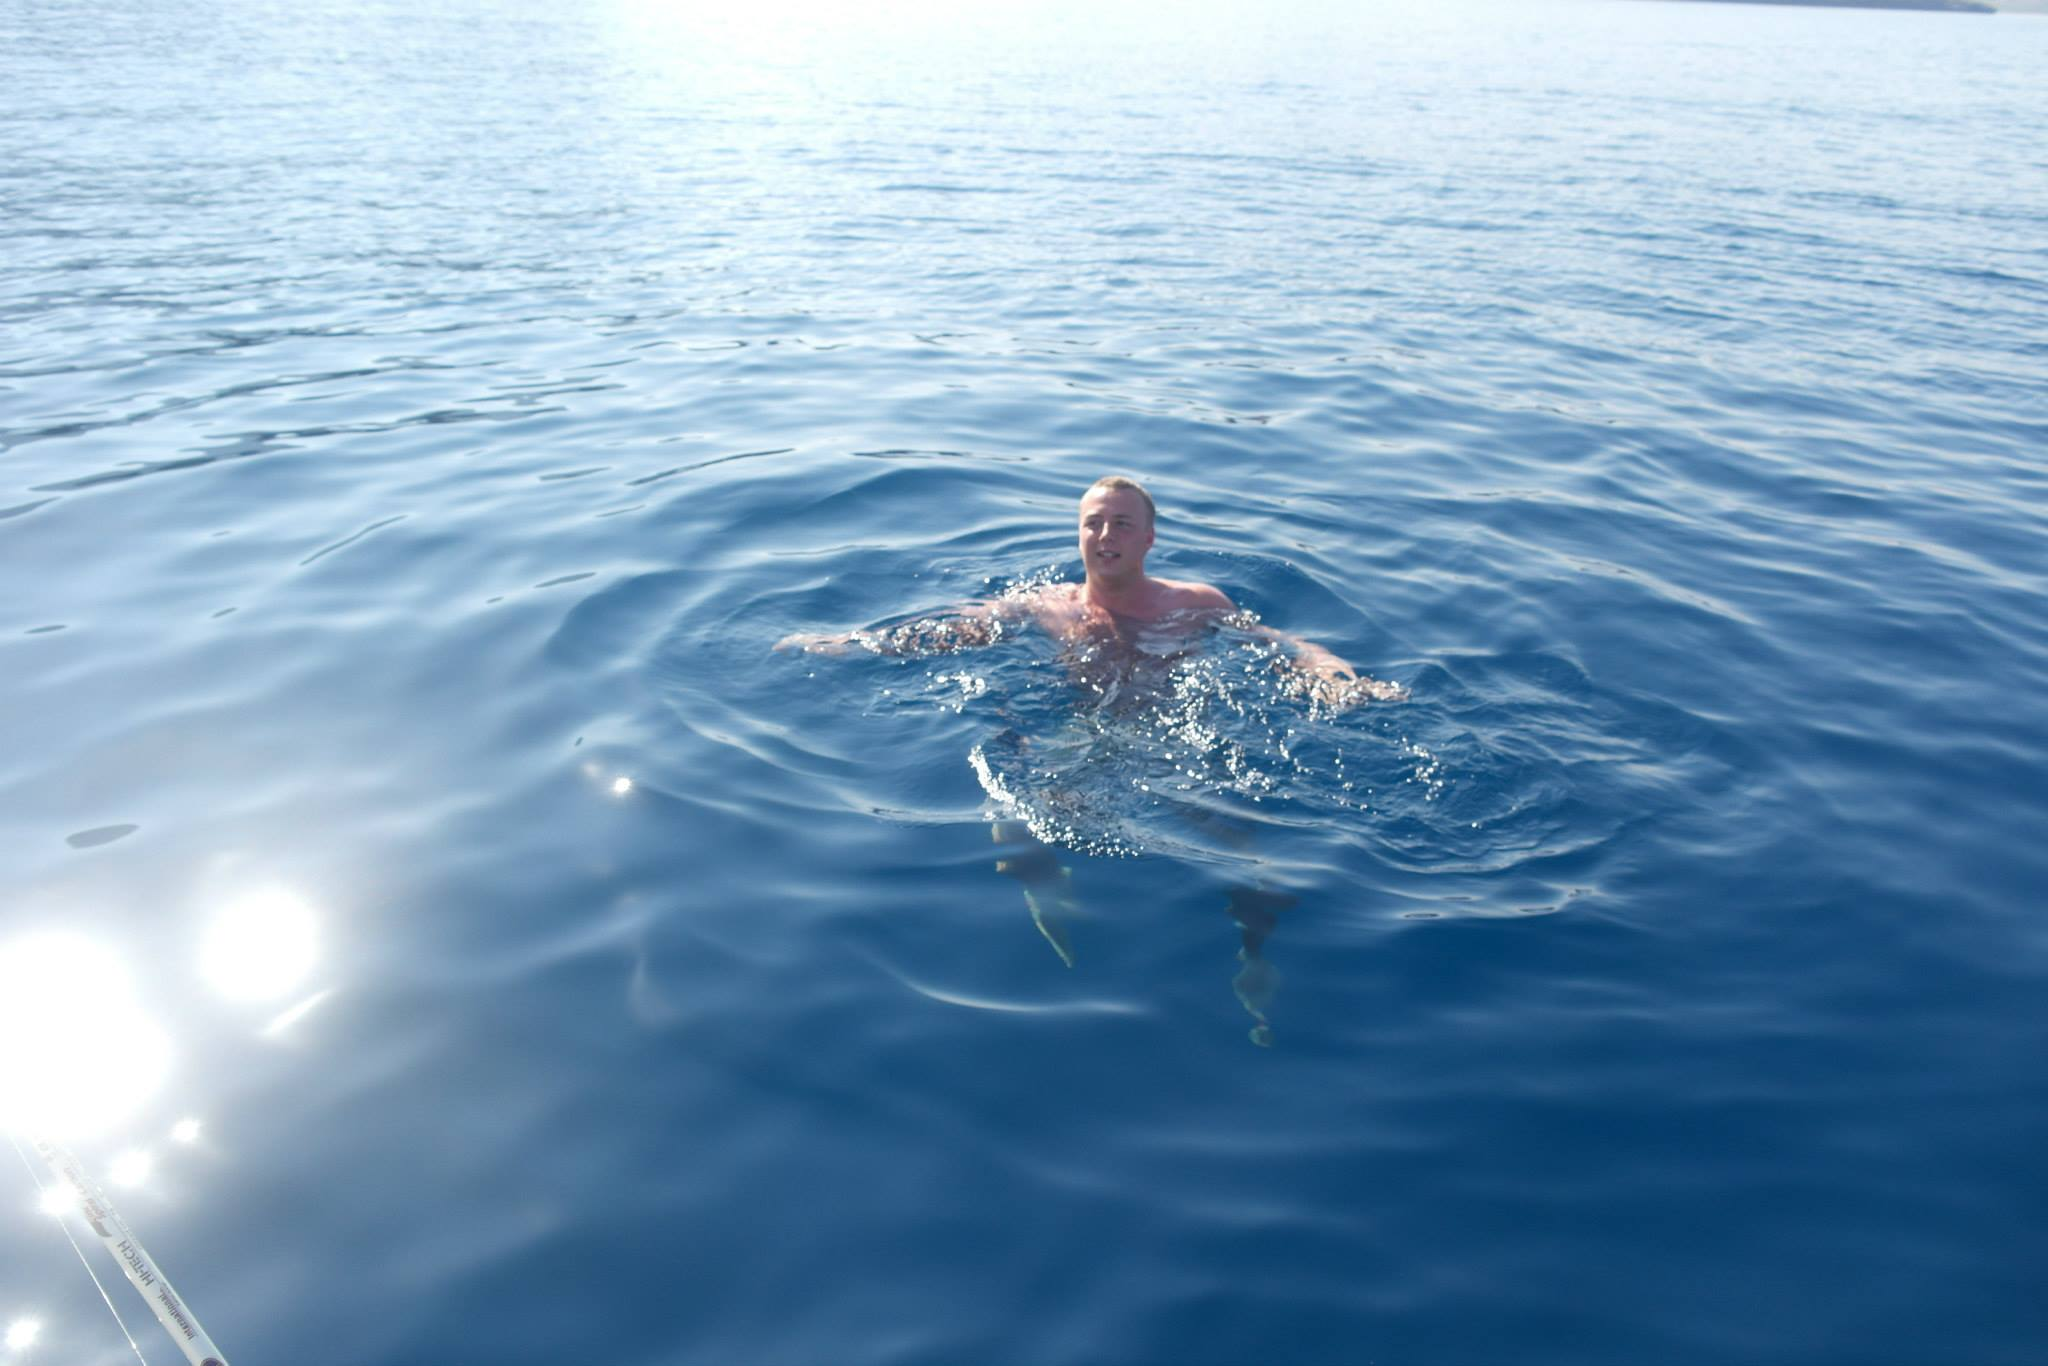 Open Water Swimming - Iceland Swimming in Ocean